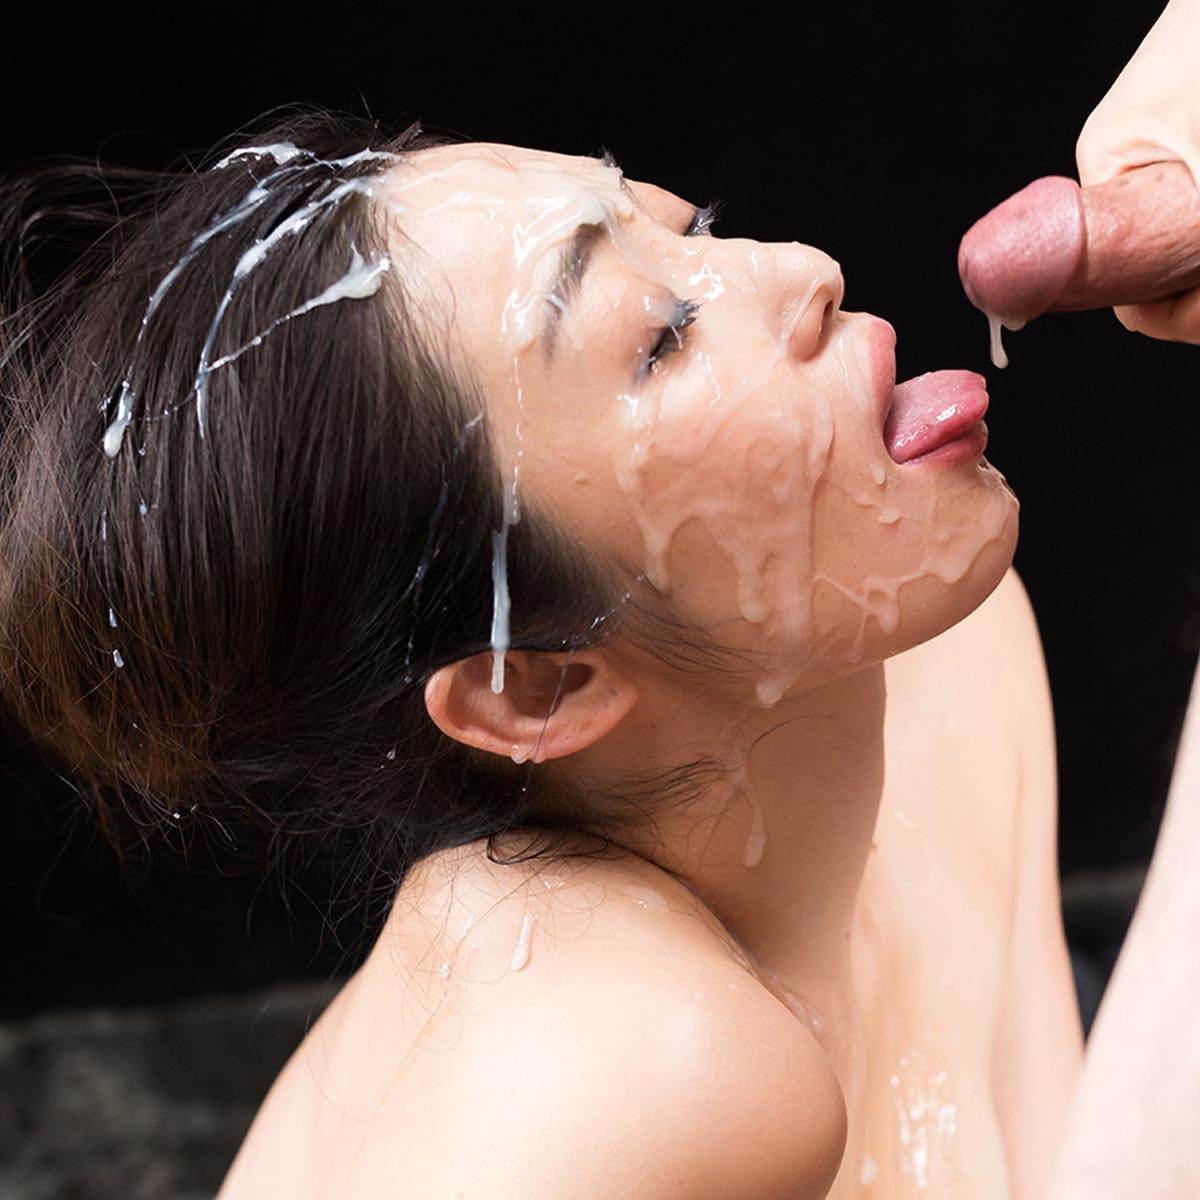 SpermMania, Cum Fetish, Bukkake and Facials. Uncensored Japanese porn videos featuring nude girls sucking and fucking many cocks.